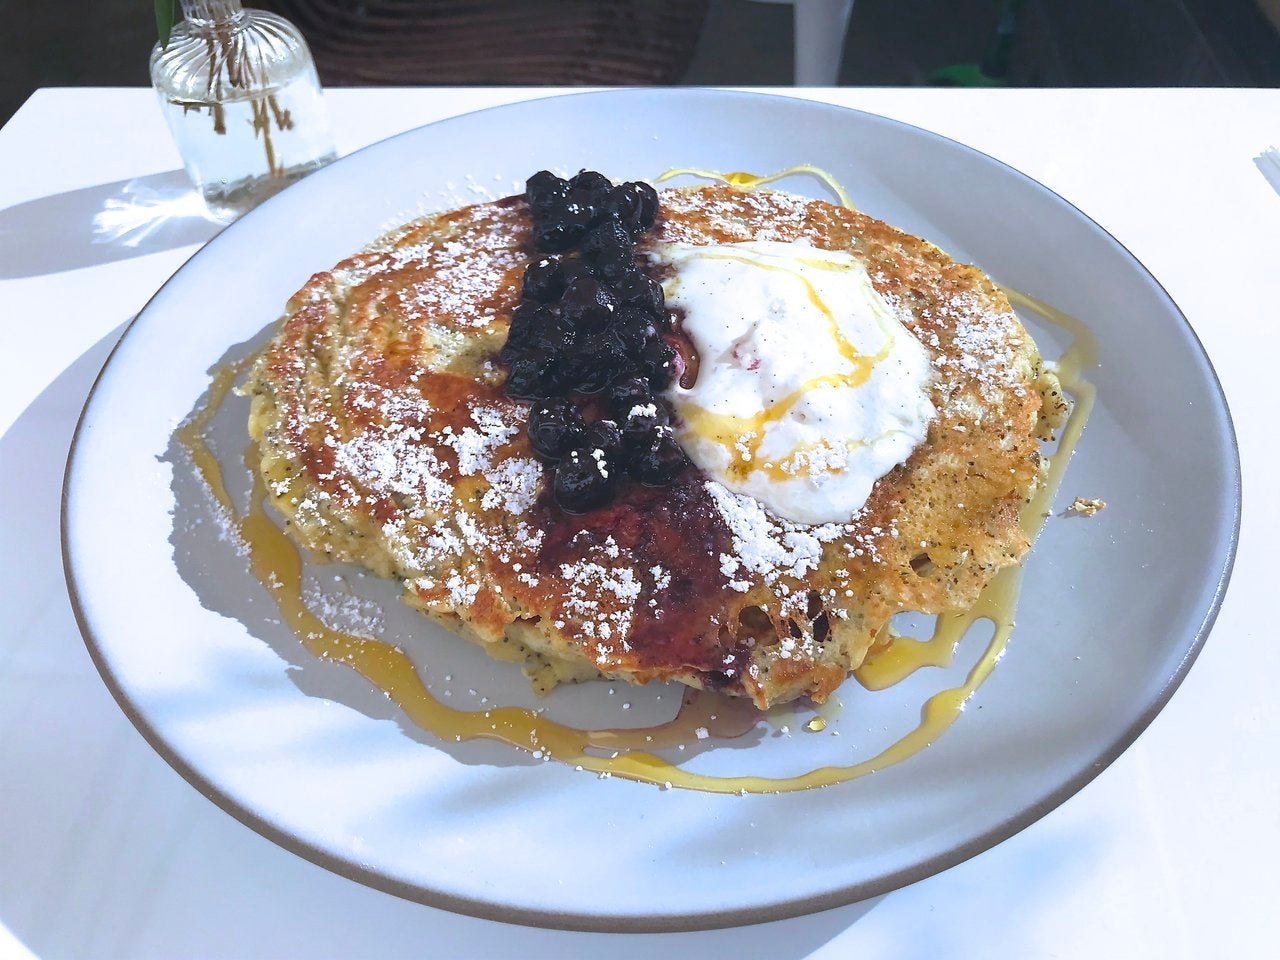 Lemon & poppy seed pancakes at Pollen